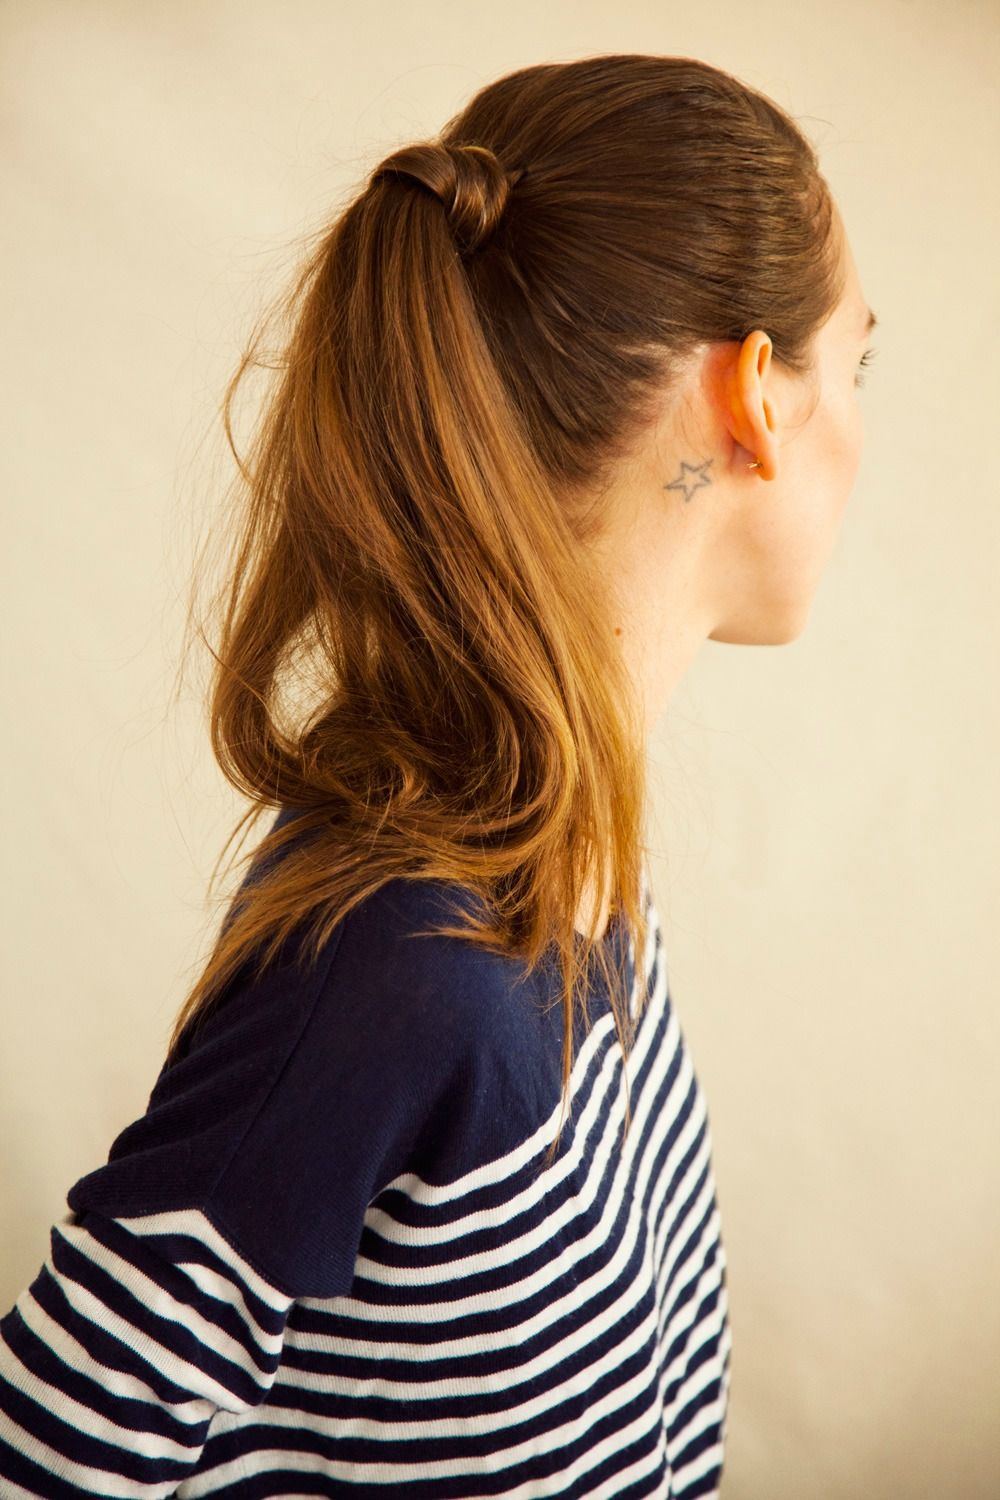 Recreate Our Favorite NewPonytail